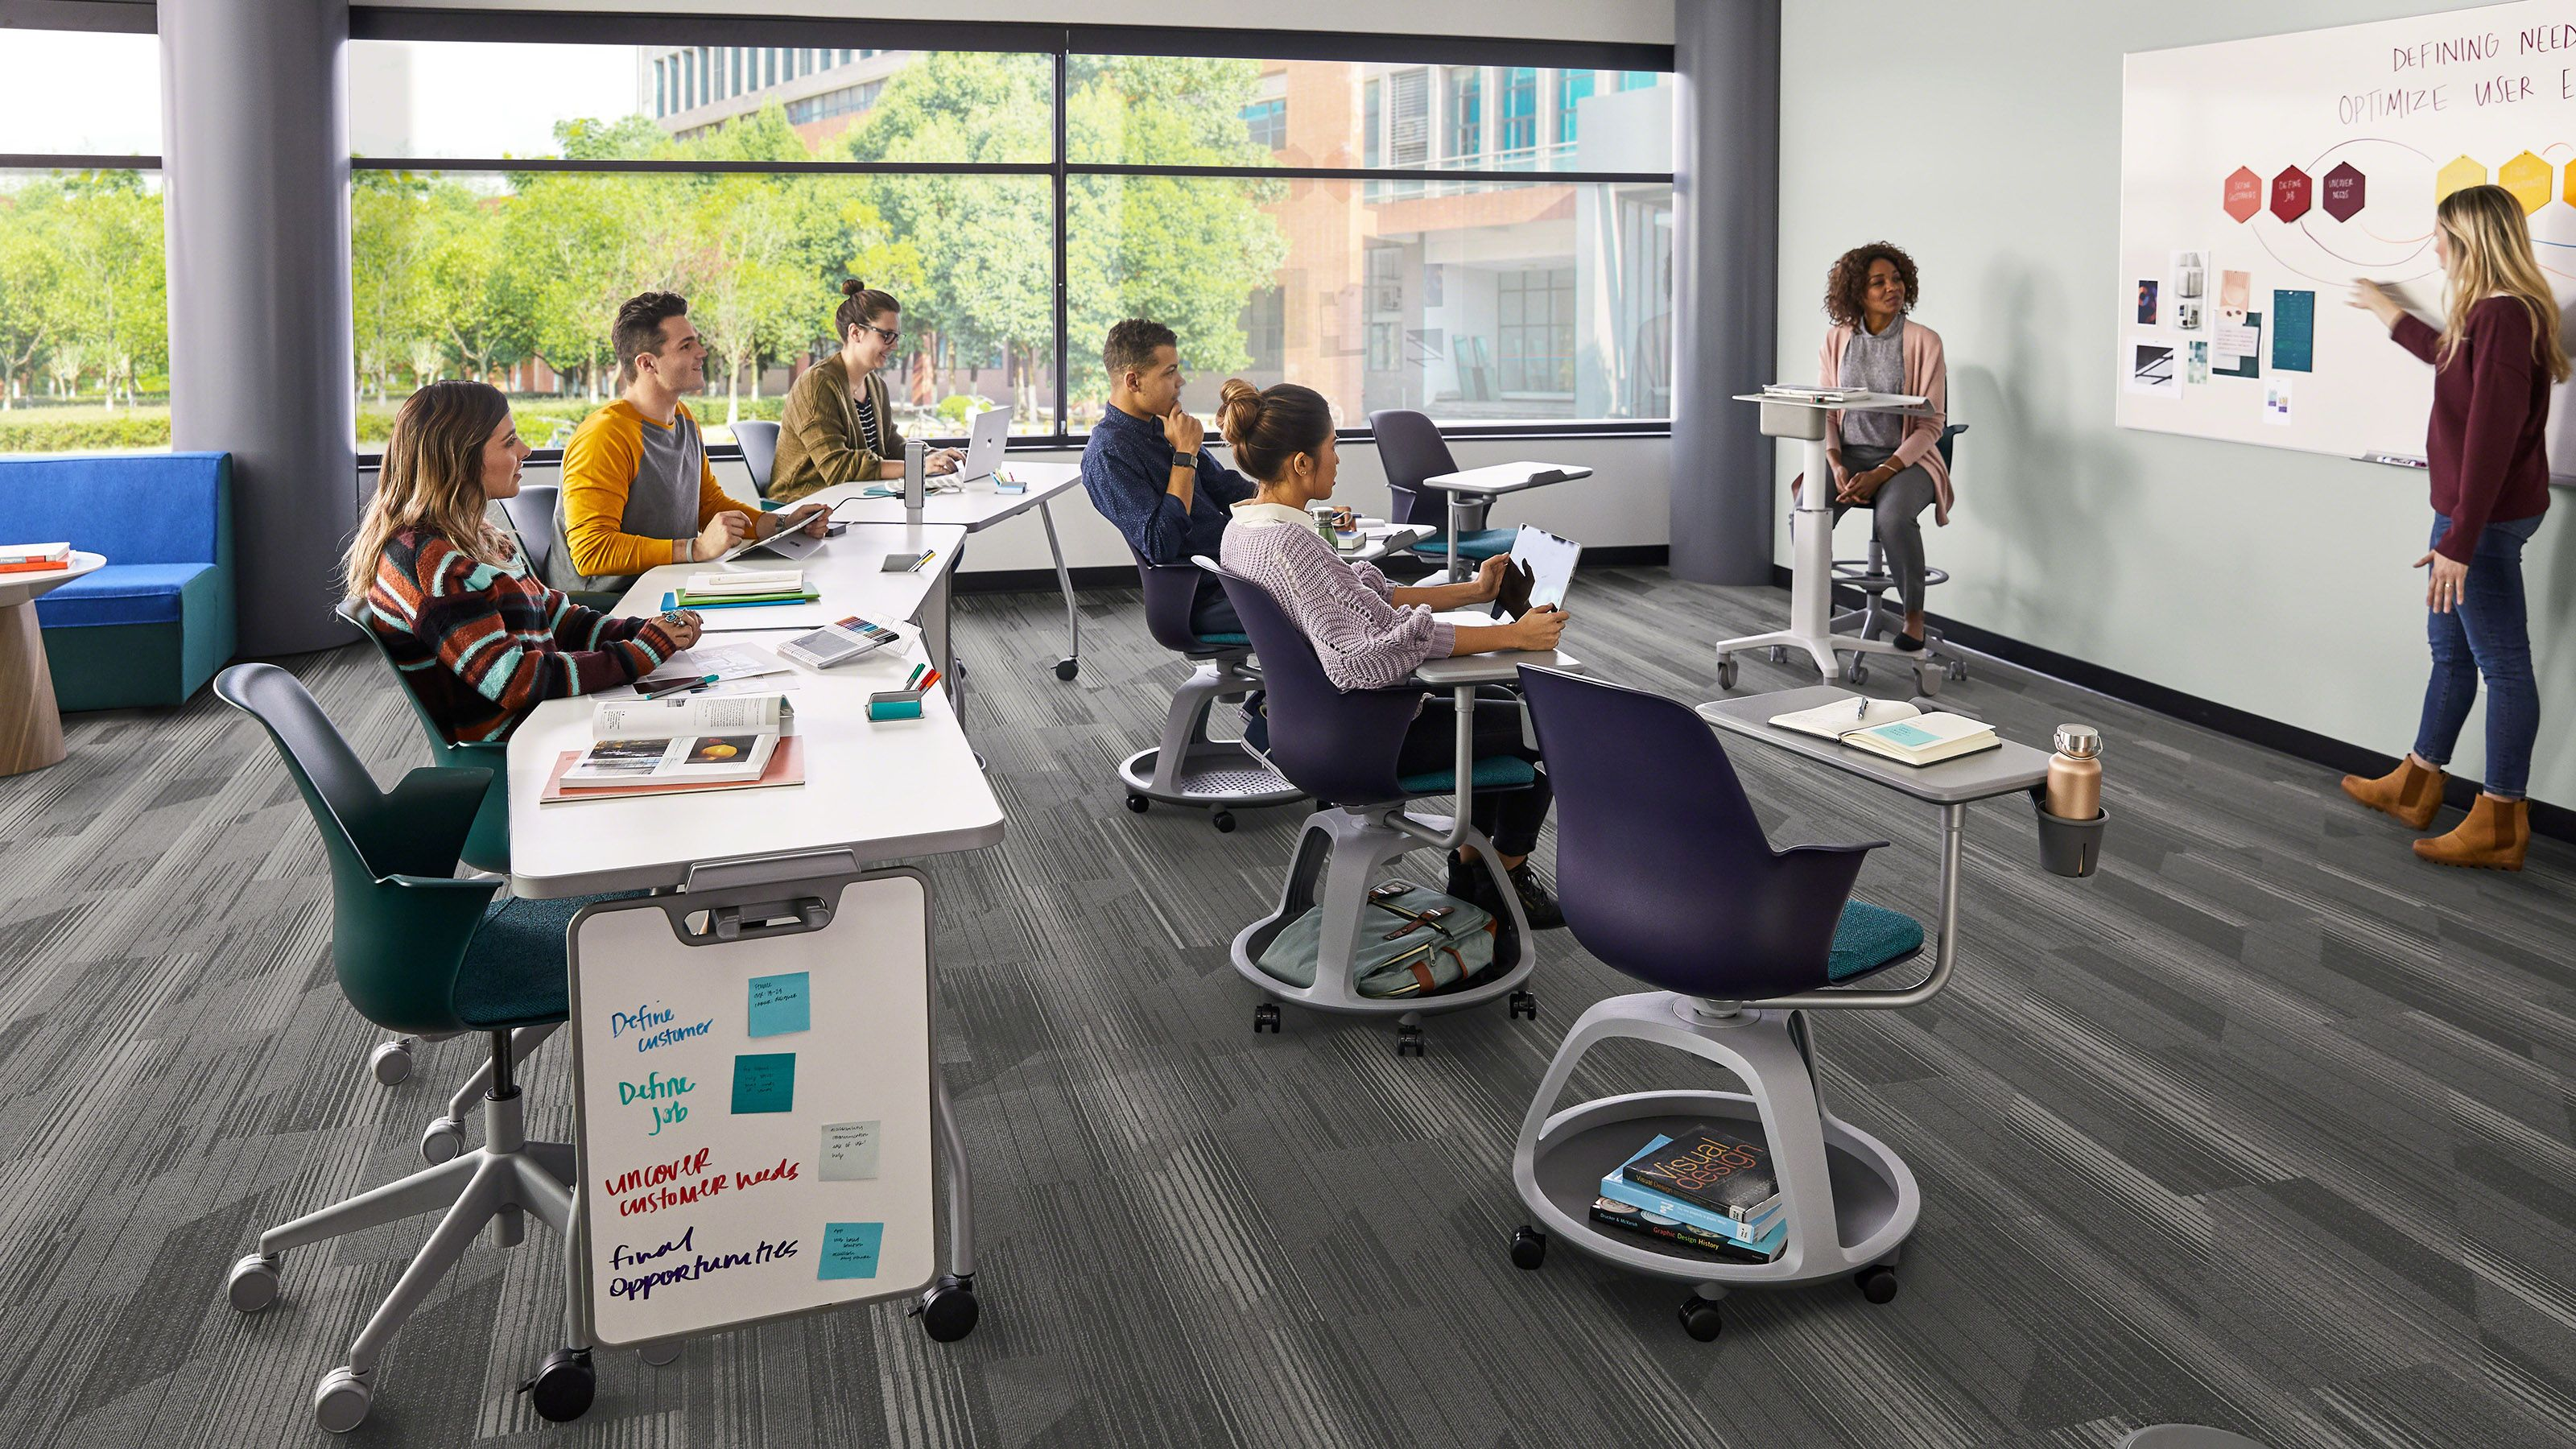 Node With Images Classroom Seating Steelcase Learning Spaces